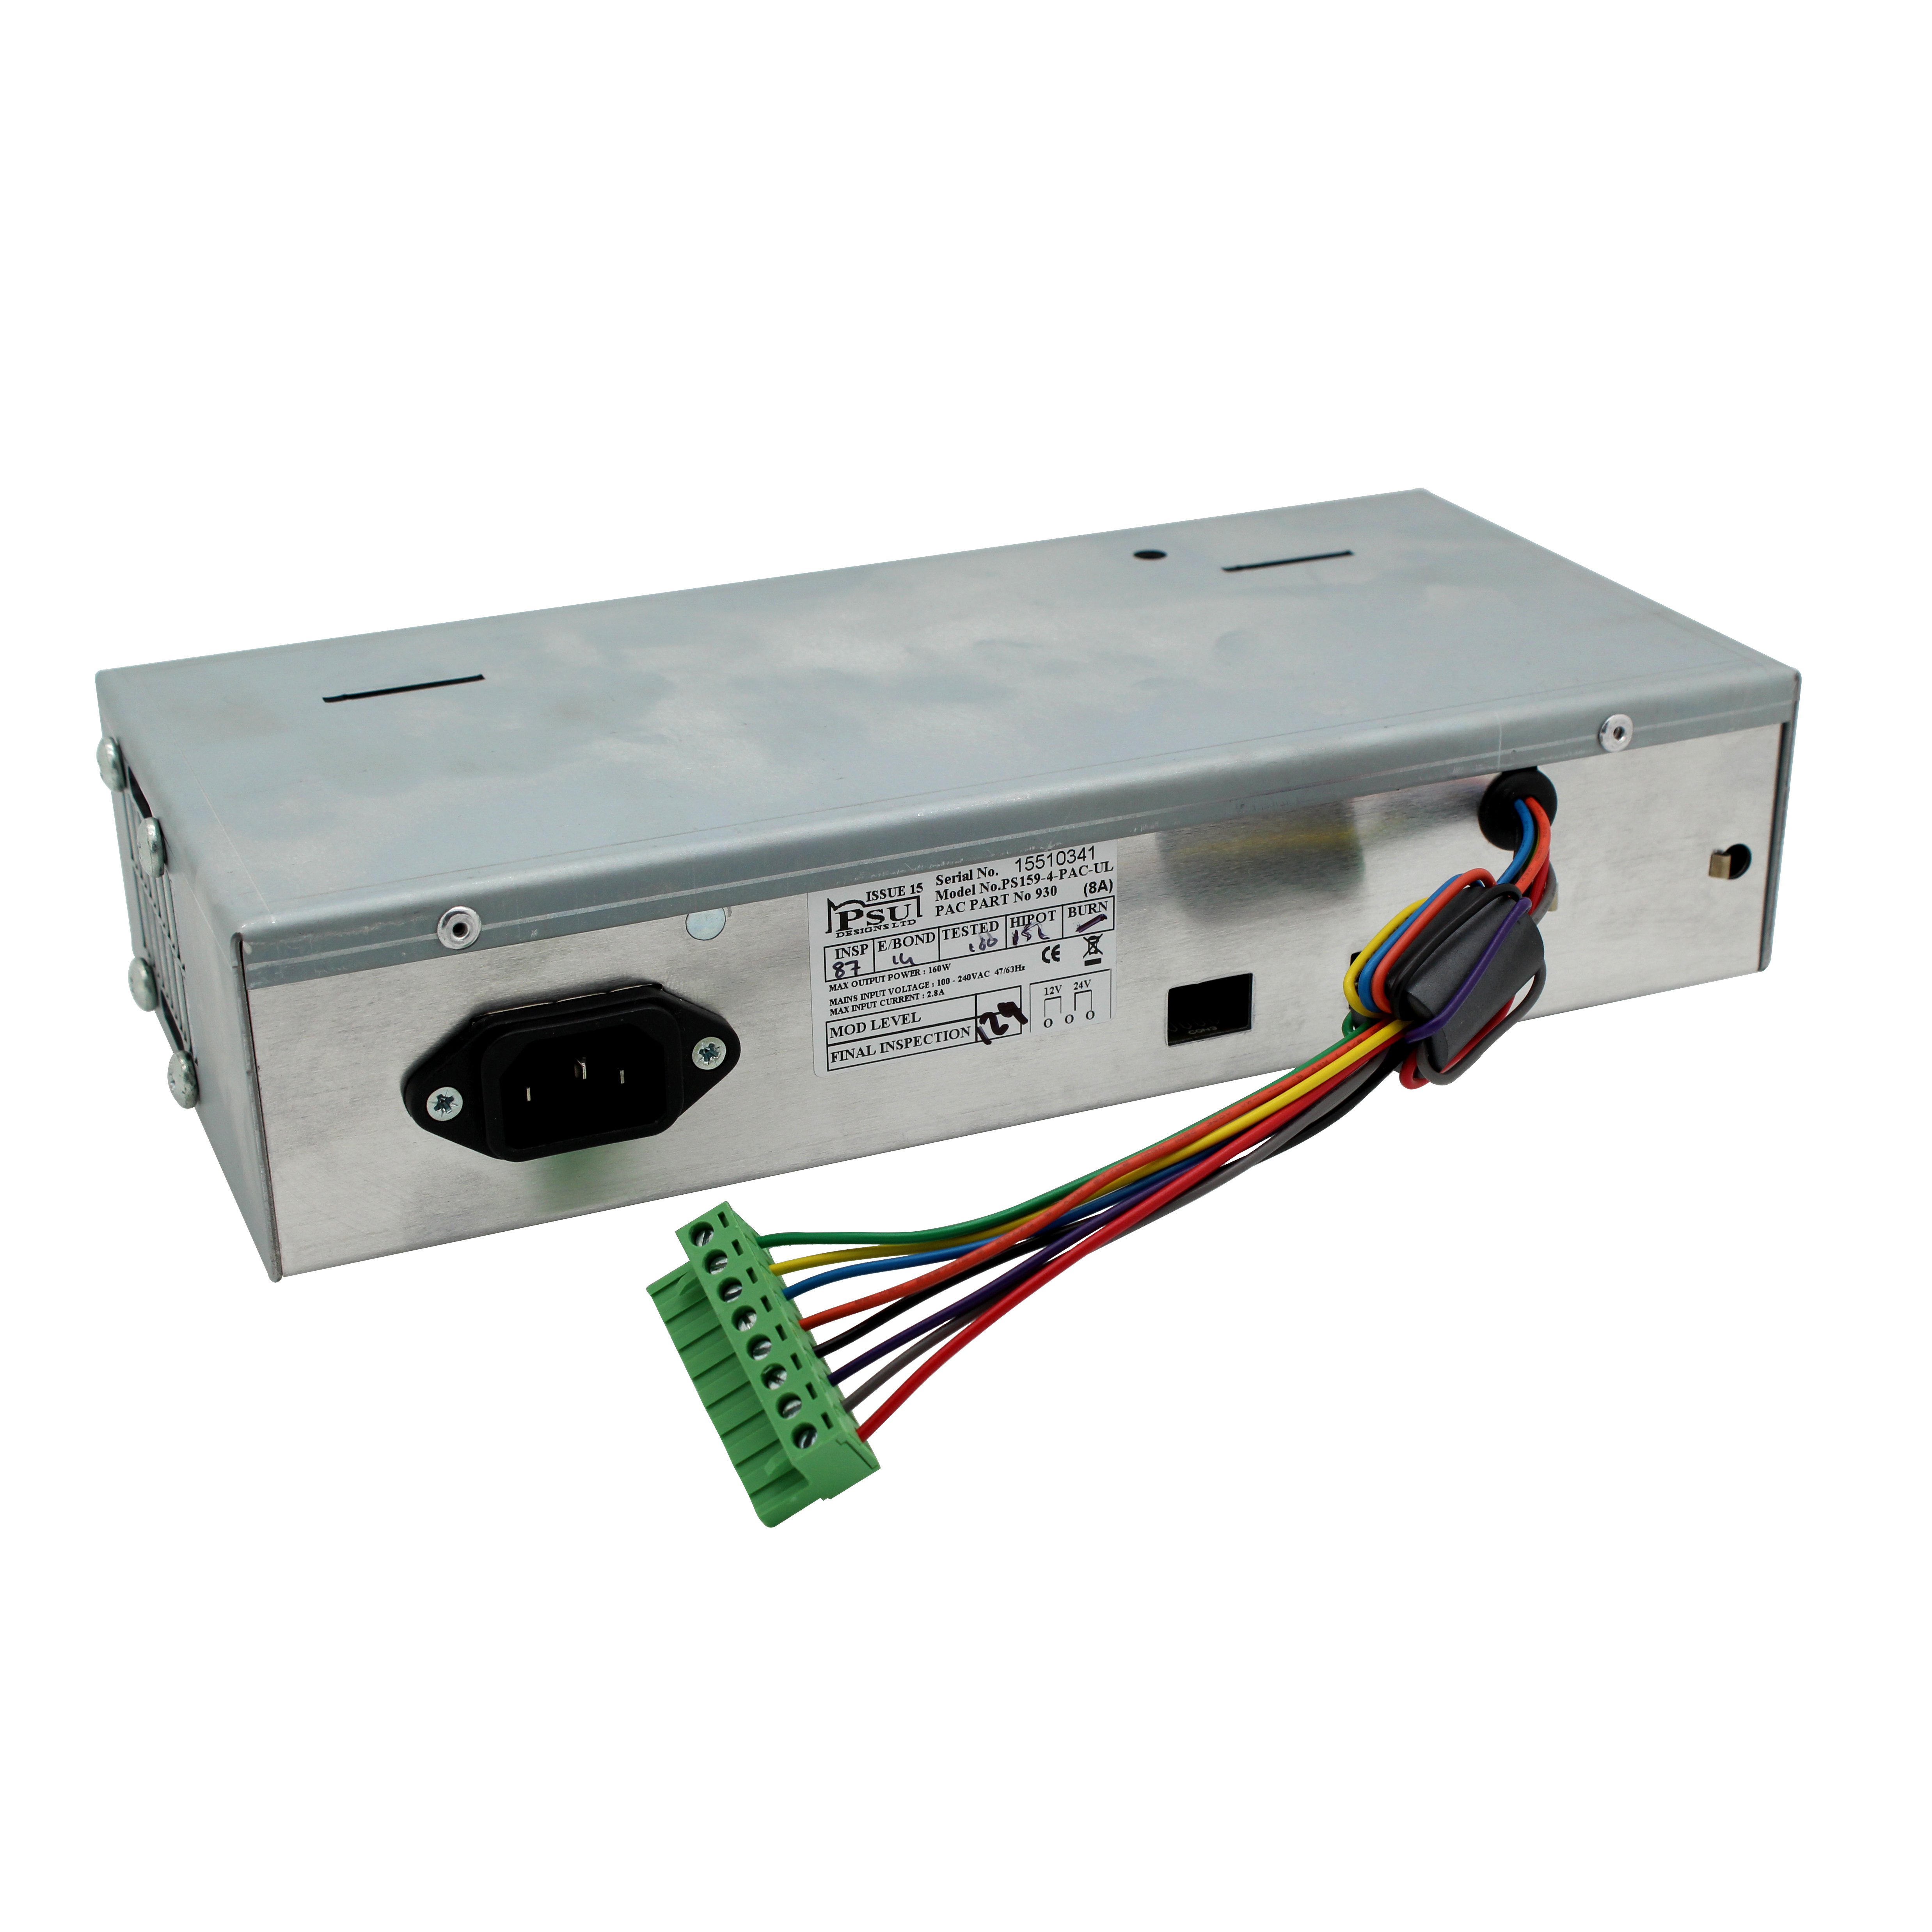 PAC 2200 replacement PSU